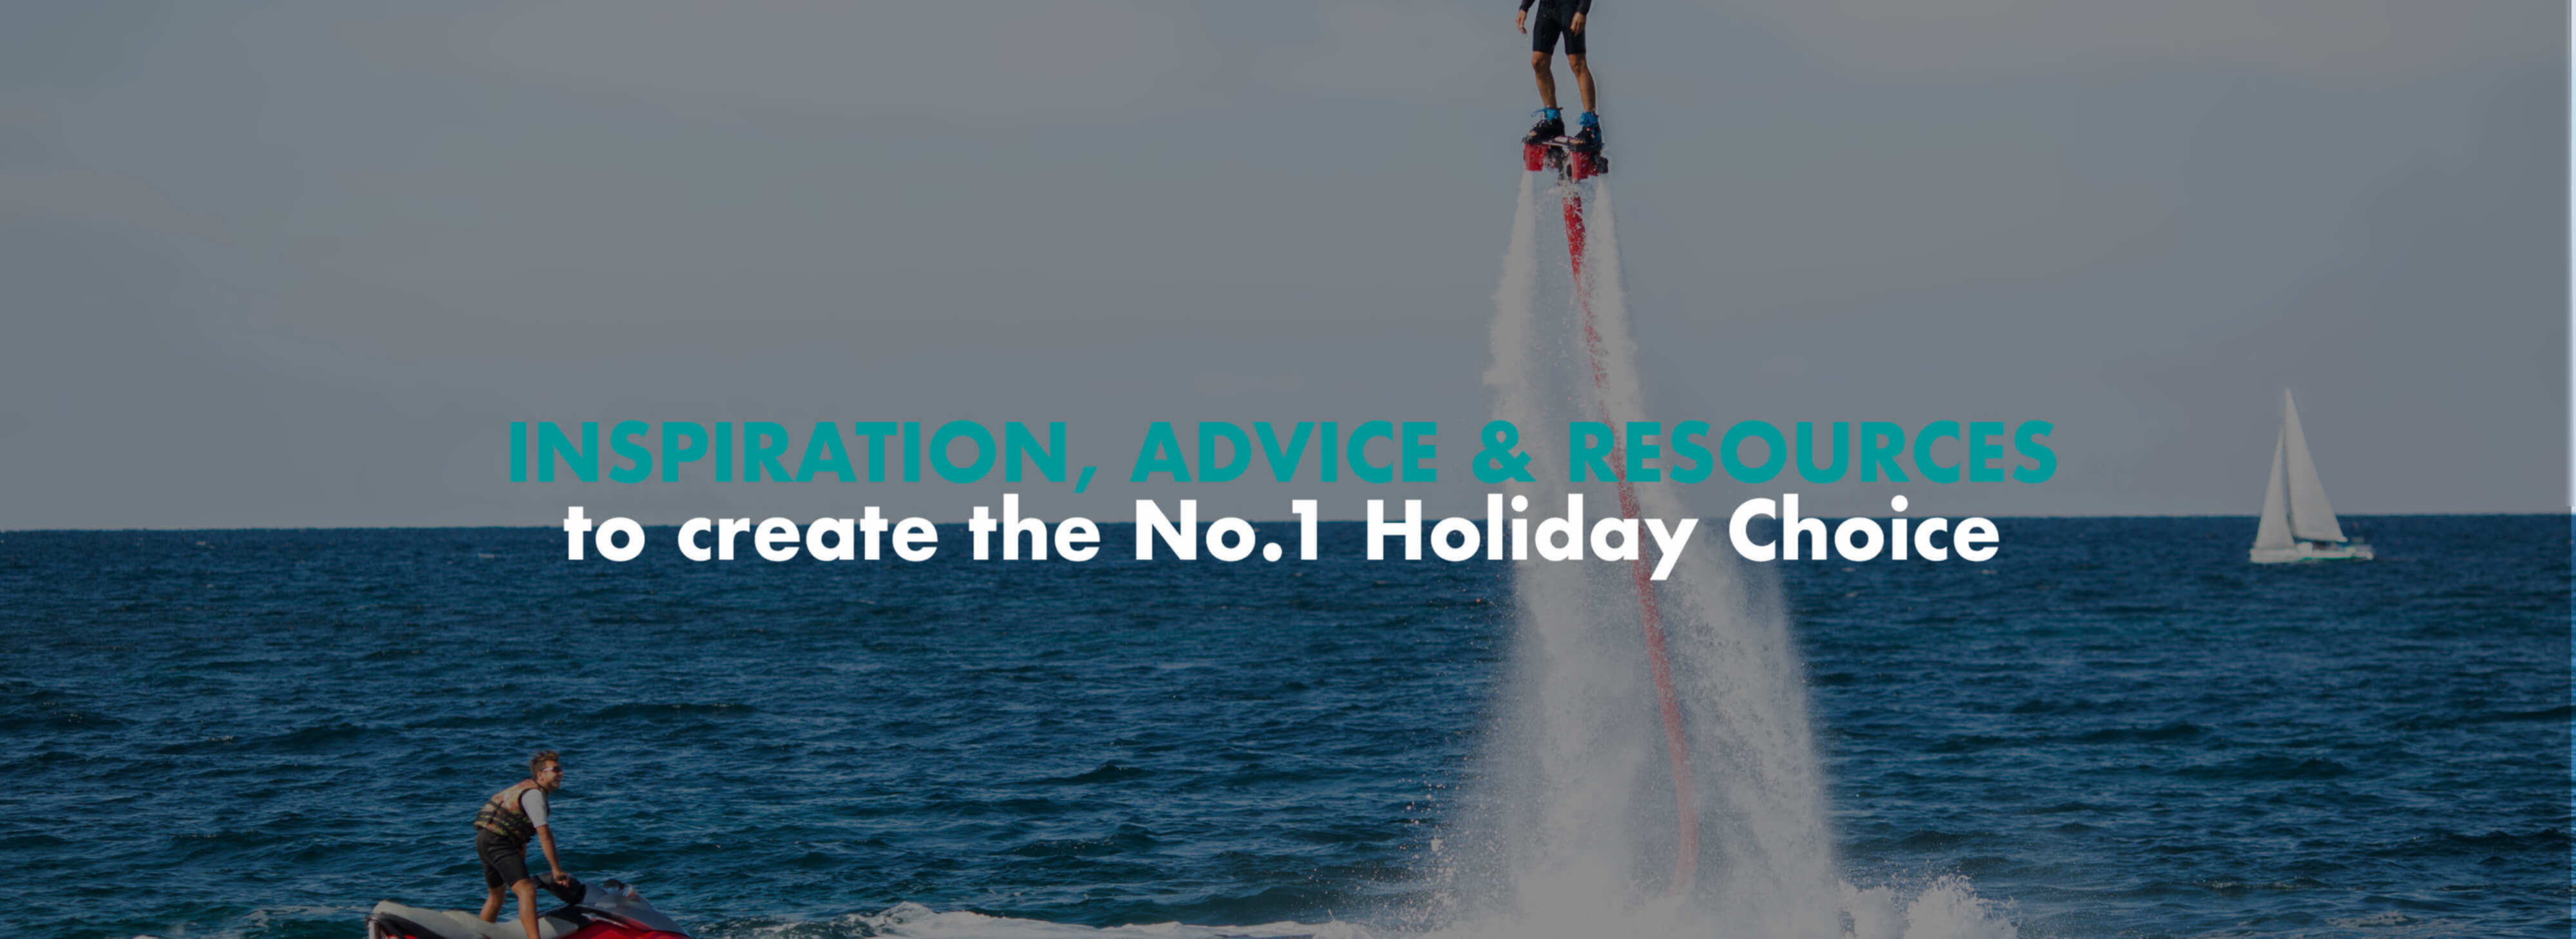 At the Holiday Park & Resort Innovation Show you will find inspiration, advice & resources!